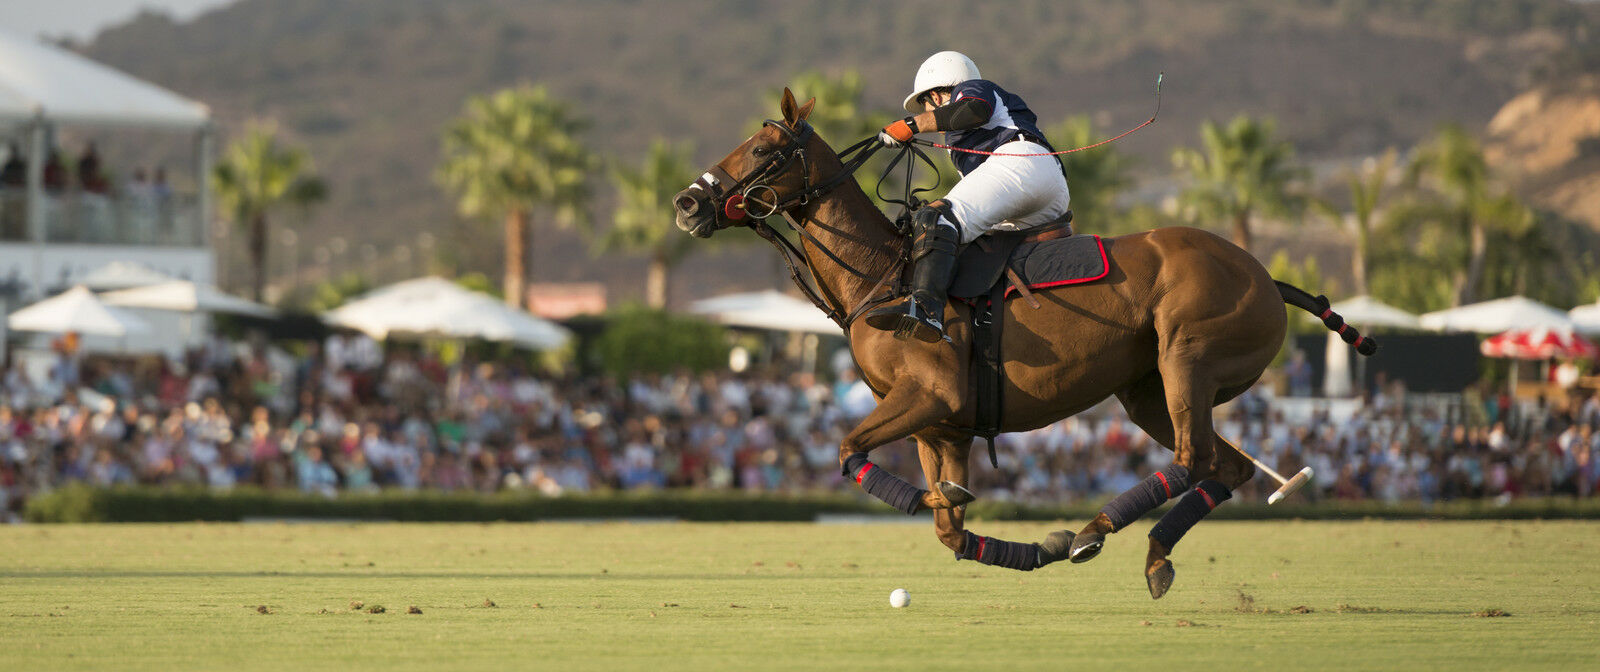 Bentley Denver Charity Polo Series